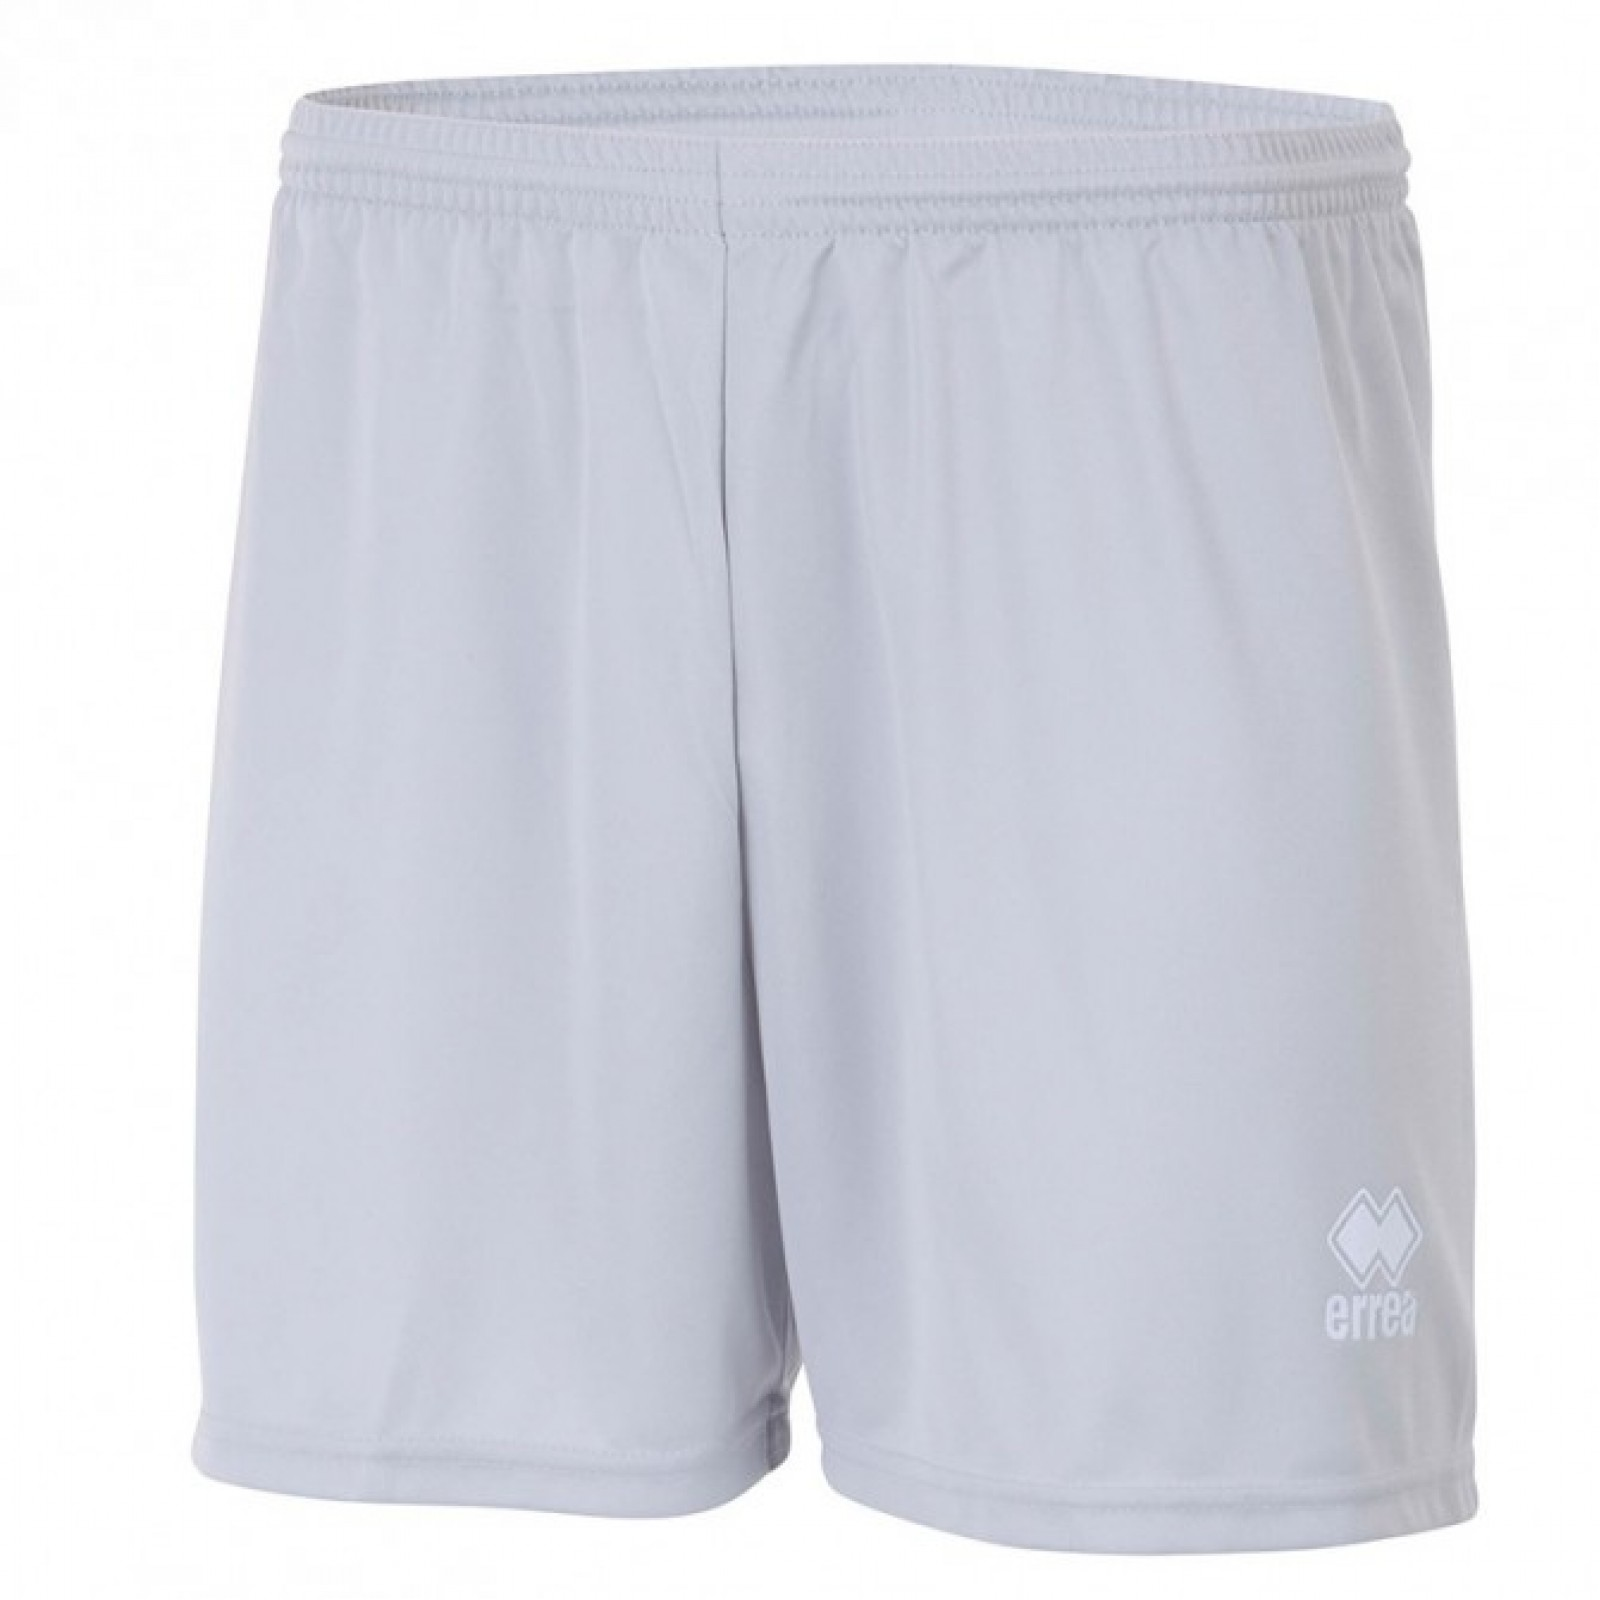 Errea New Skin Shorts